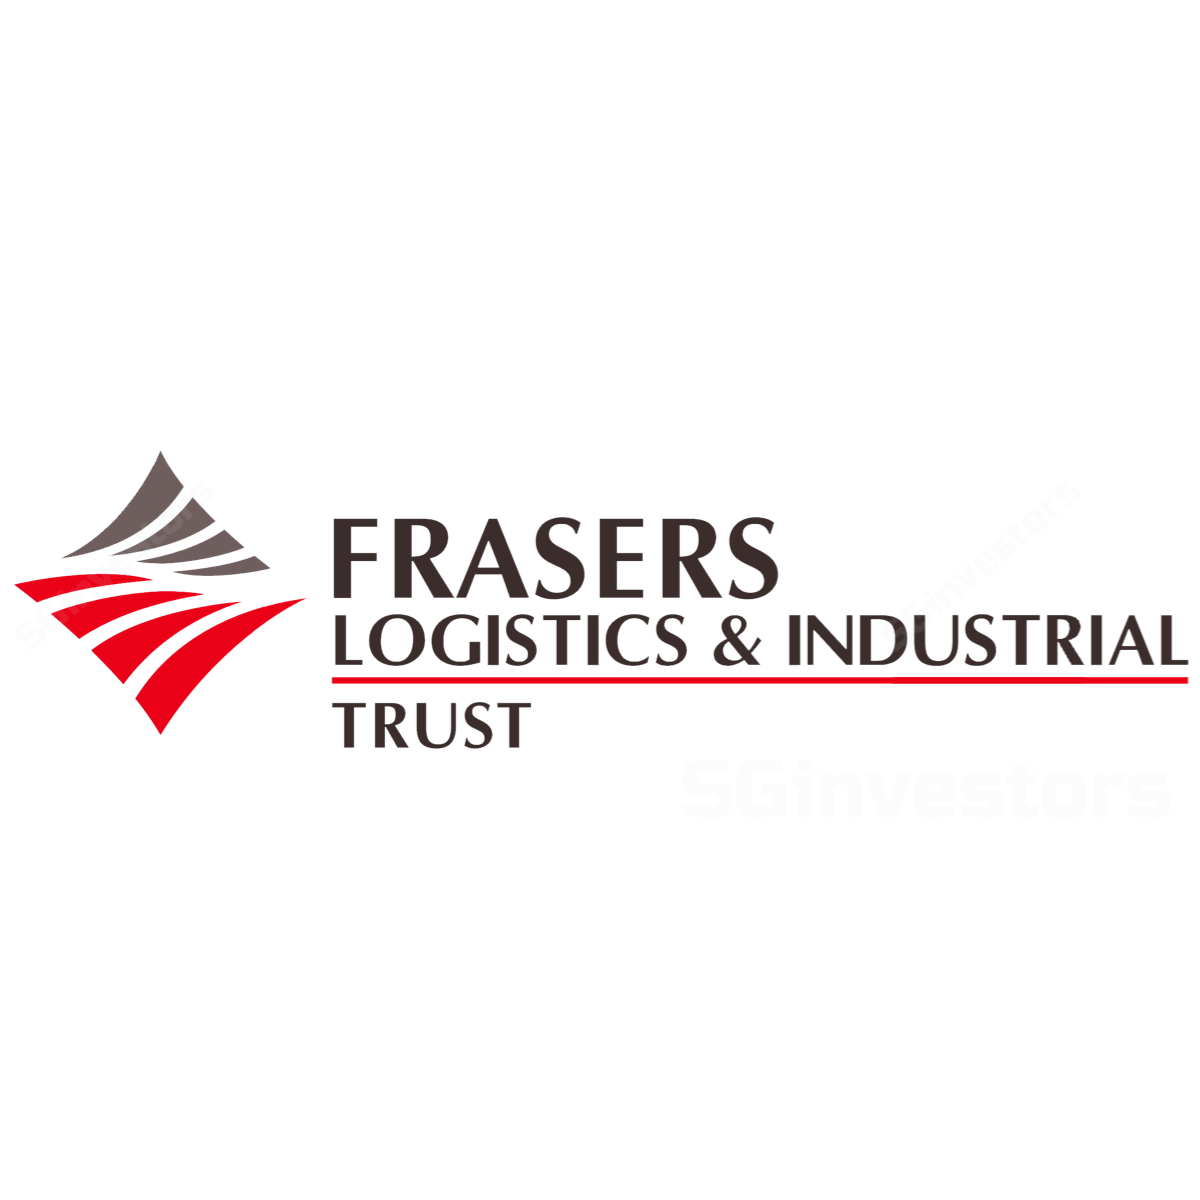 Frasers Logistics & Industrial Trust - OCBC Investment 2018-01-29: Bright Start To FY18